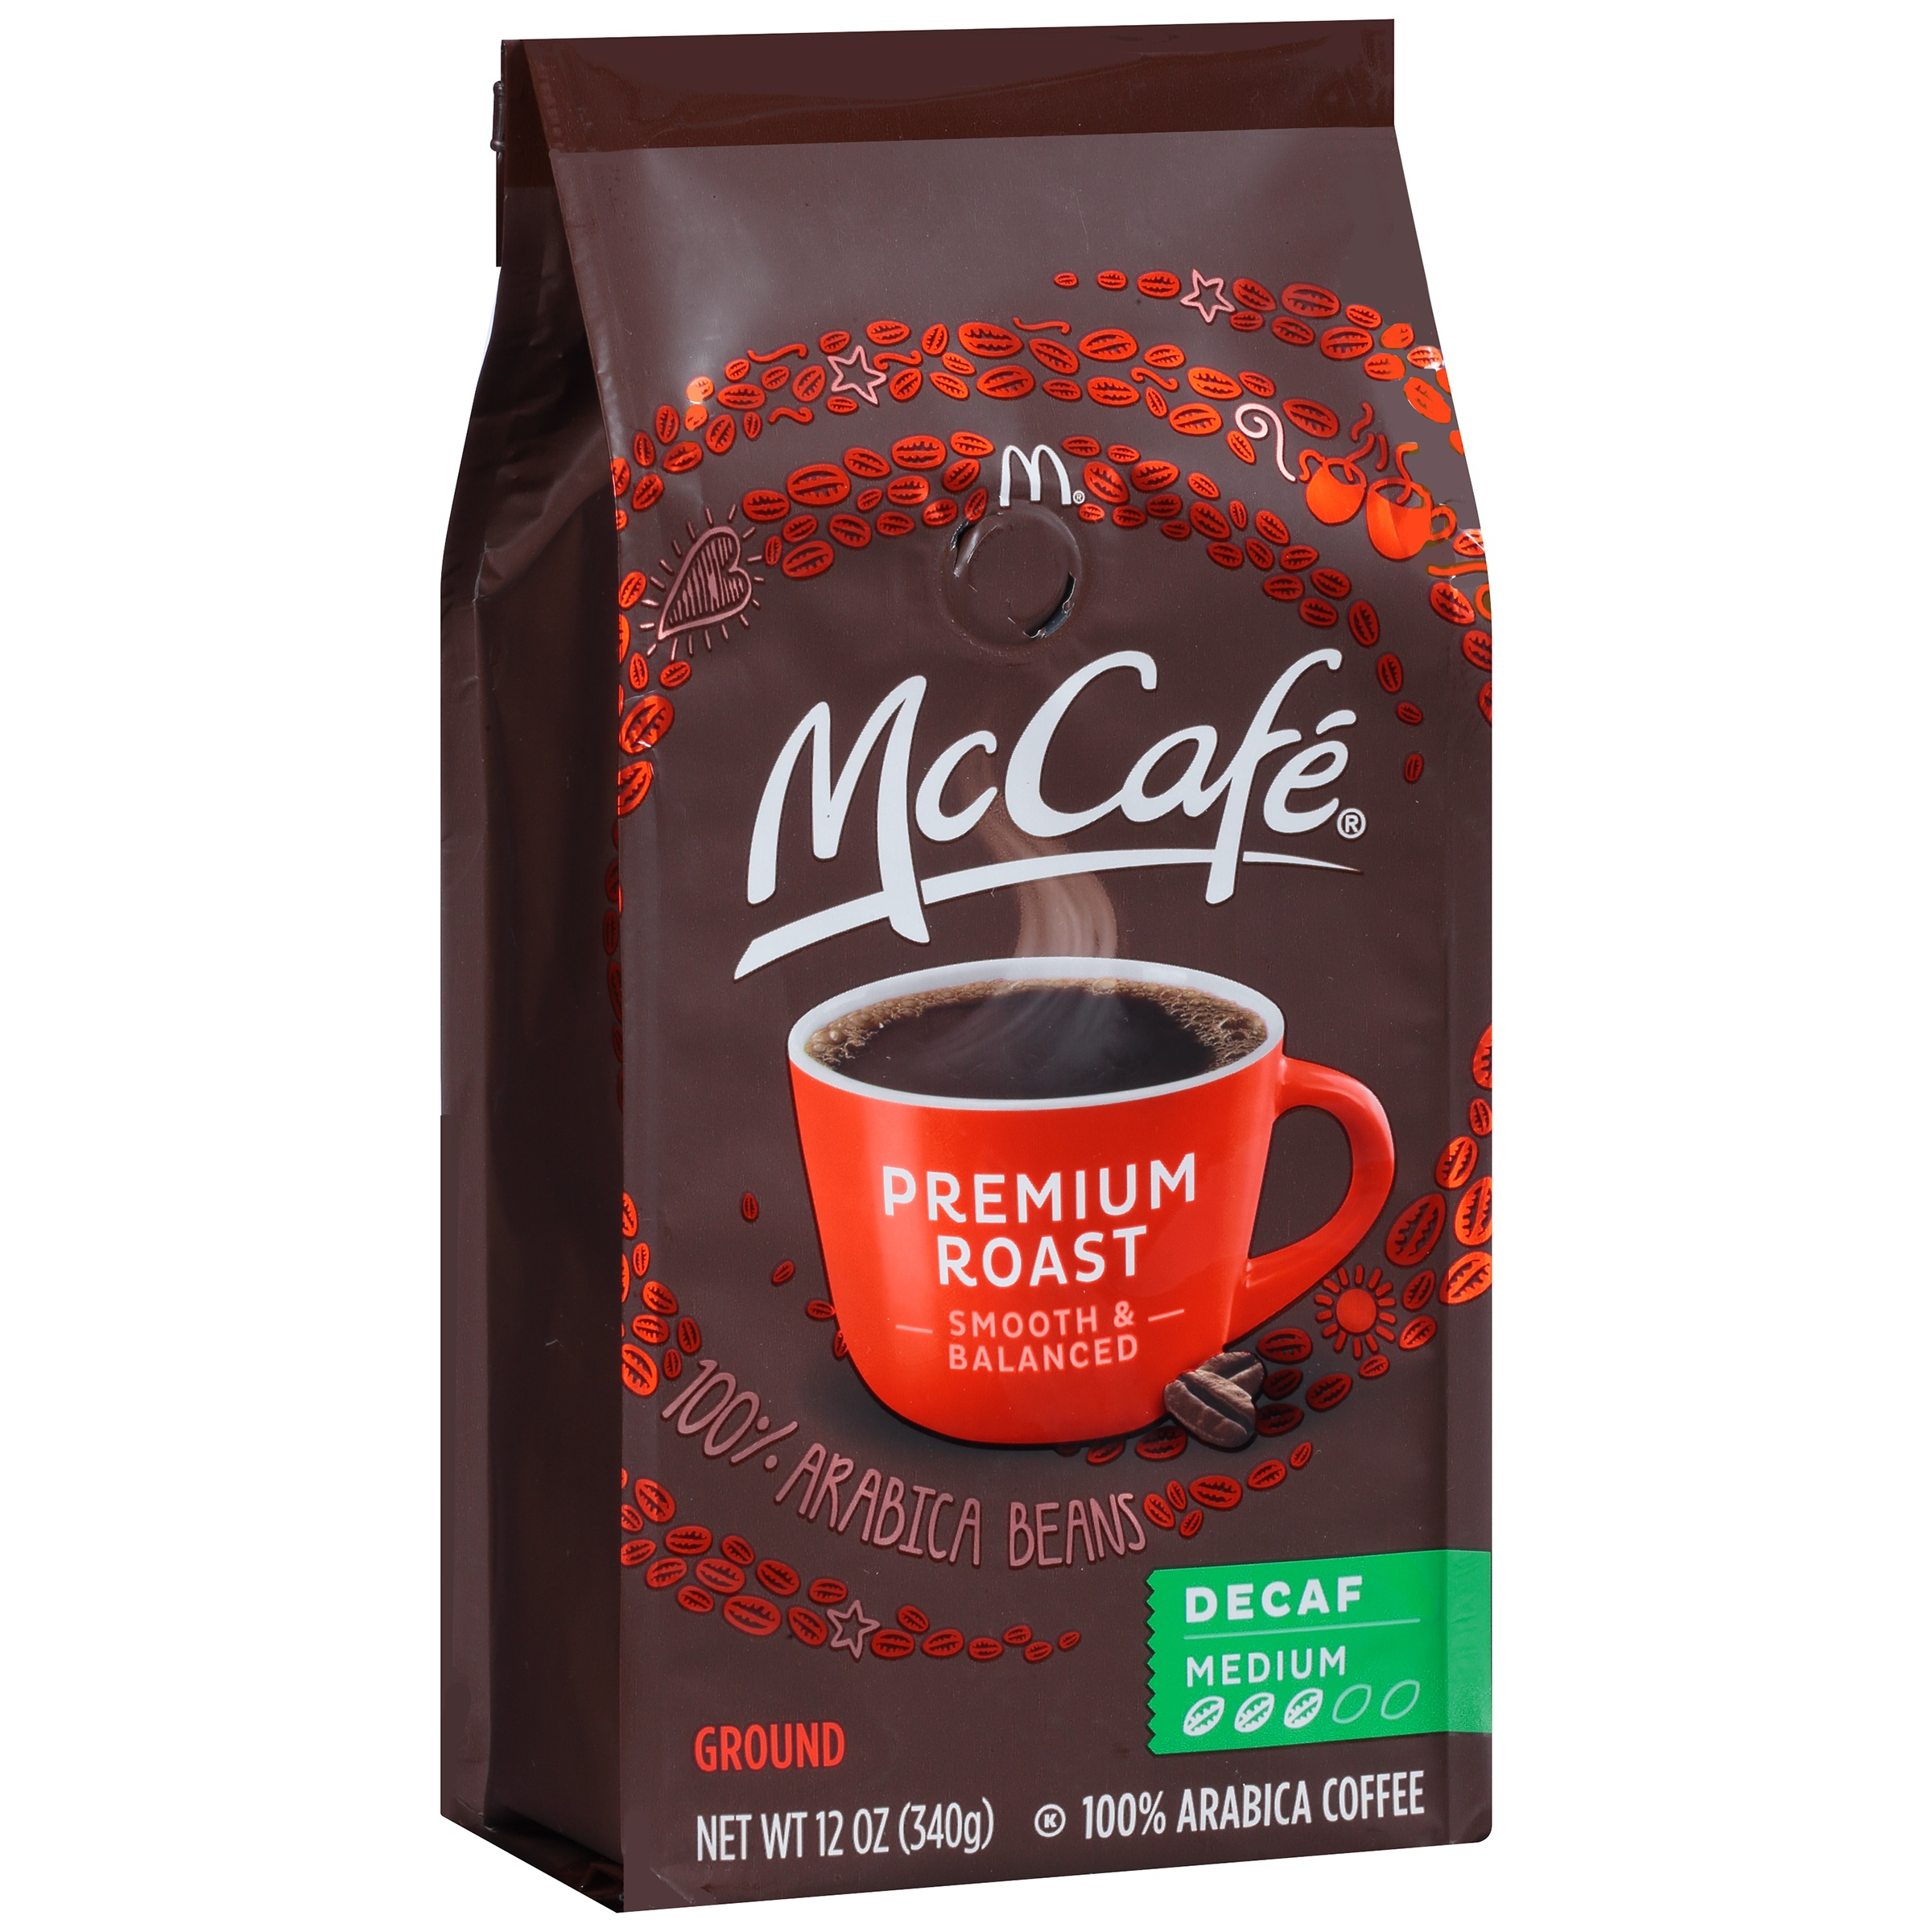 McCafe Premium Medium Roast Decaf Ground Coffee, 12 OZ (340g)